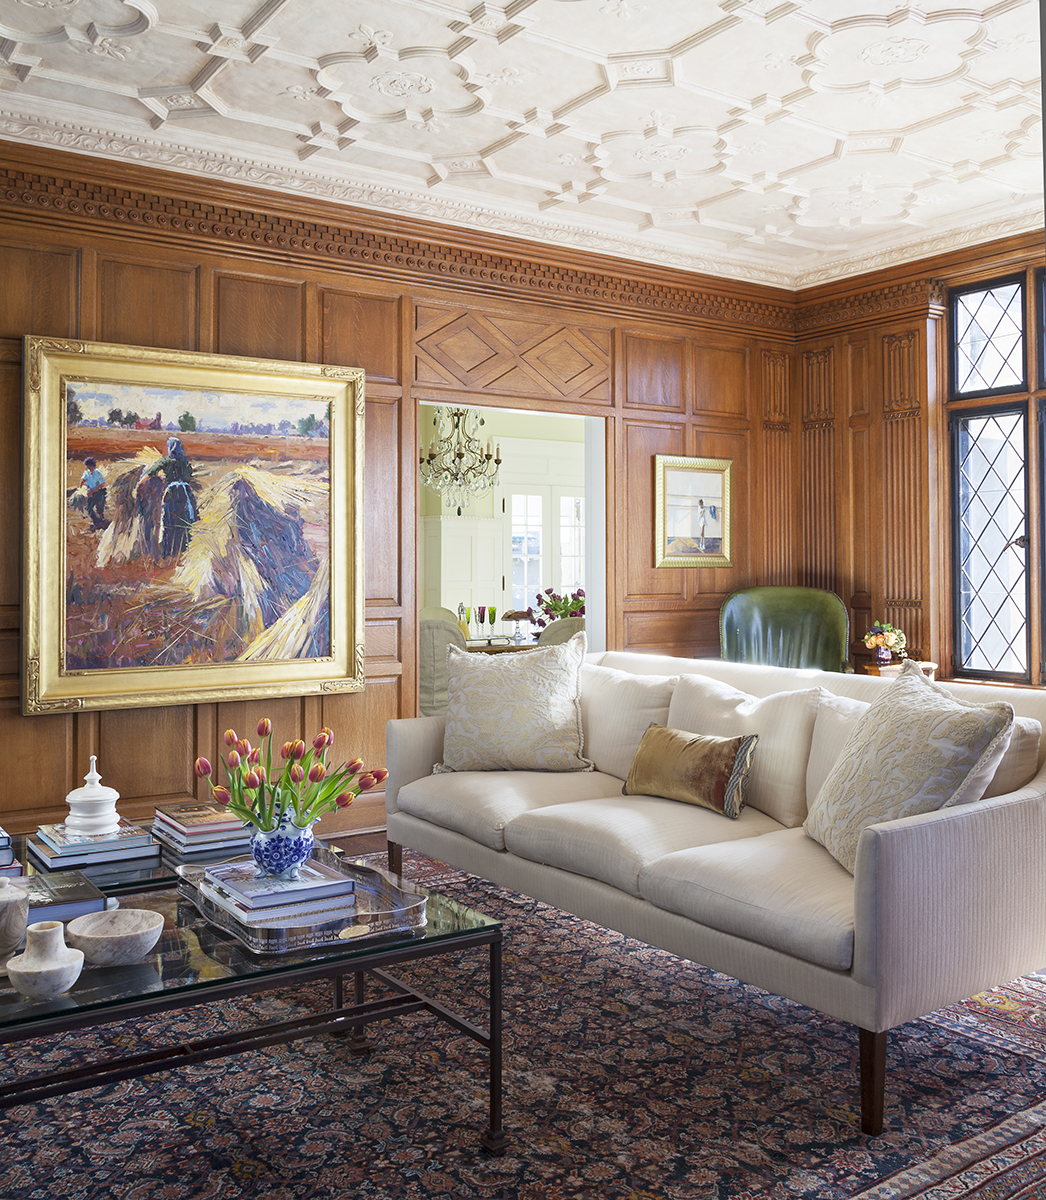 traditional interior design wall paneling with detailed plaster ceiling